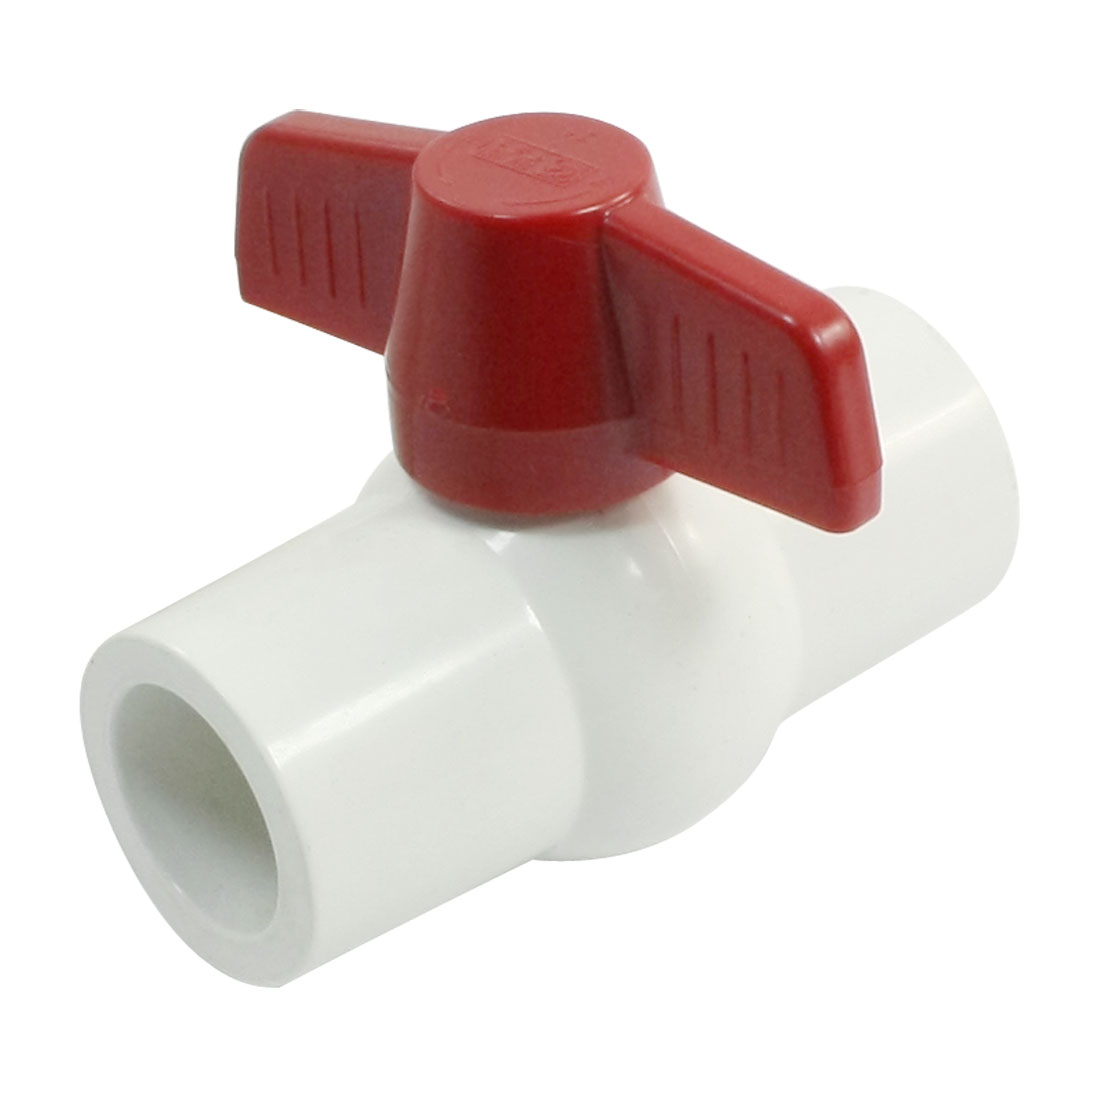 25mm x 25mm Slip Ends Full Port White Red PVC Pipe Connect Ball Valve